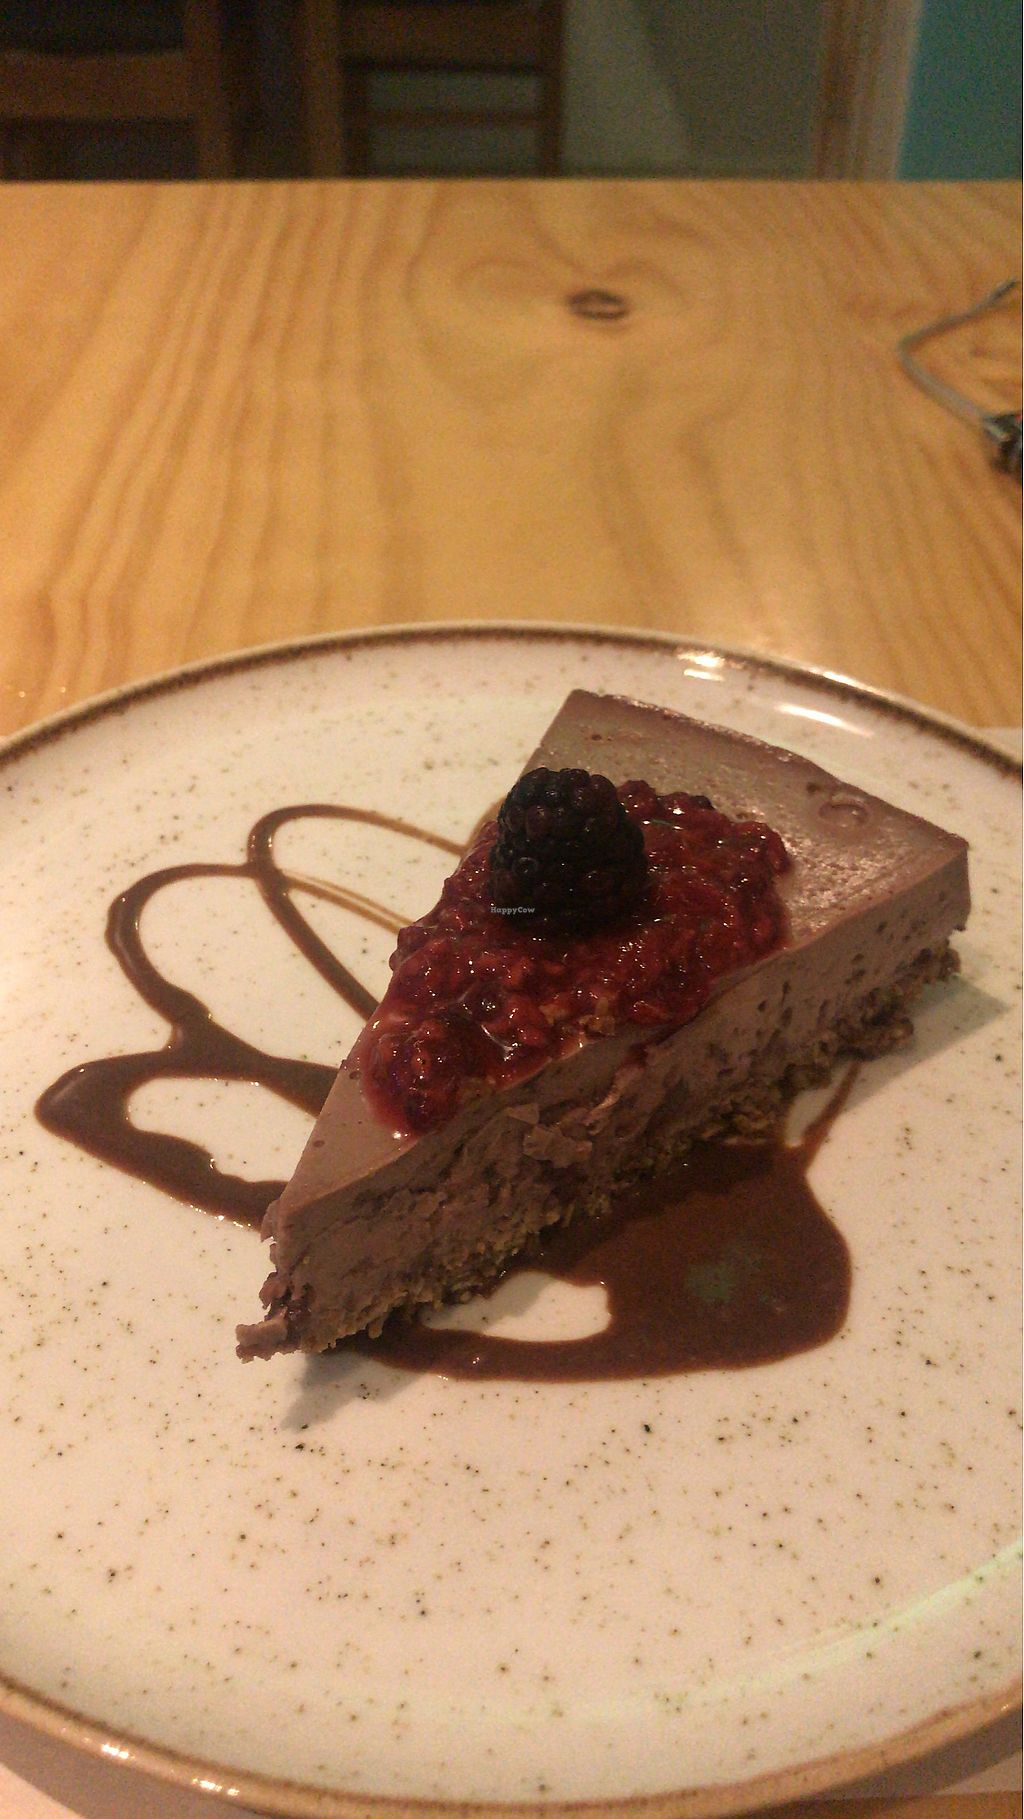 """Photo of Abdiel Vegan  by <a href=""""/members/profile/AdamHogue"""">AdamHogue</a> <br/>Vegan Chocolate Cheesecake <br/> March 27, 2018  - <a href='/contact/abuse/image/91668/376661'>Report</a>"""